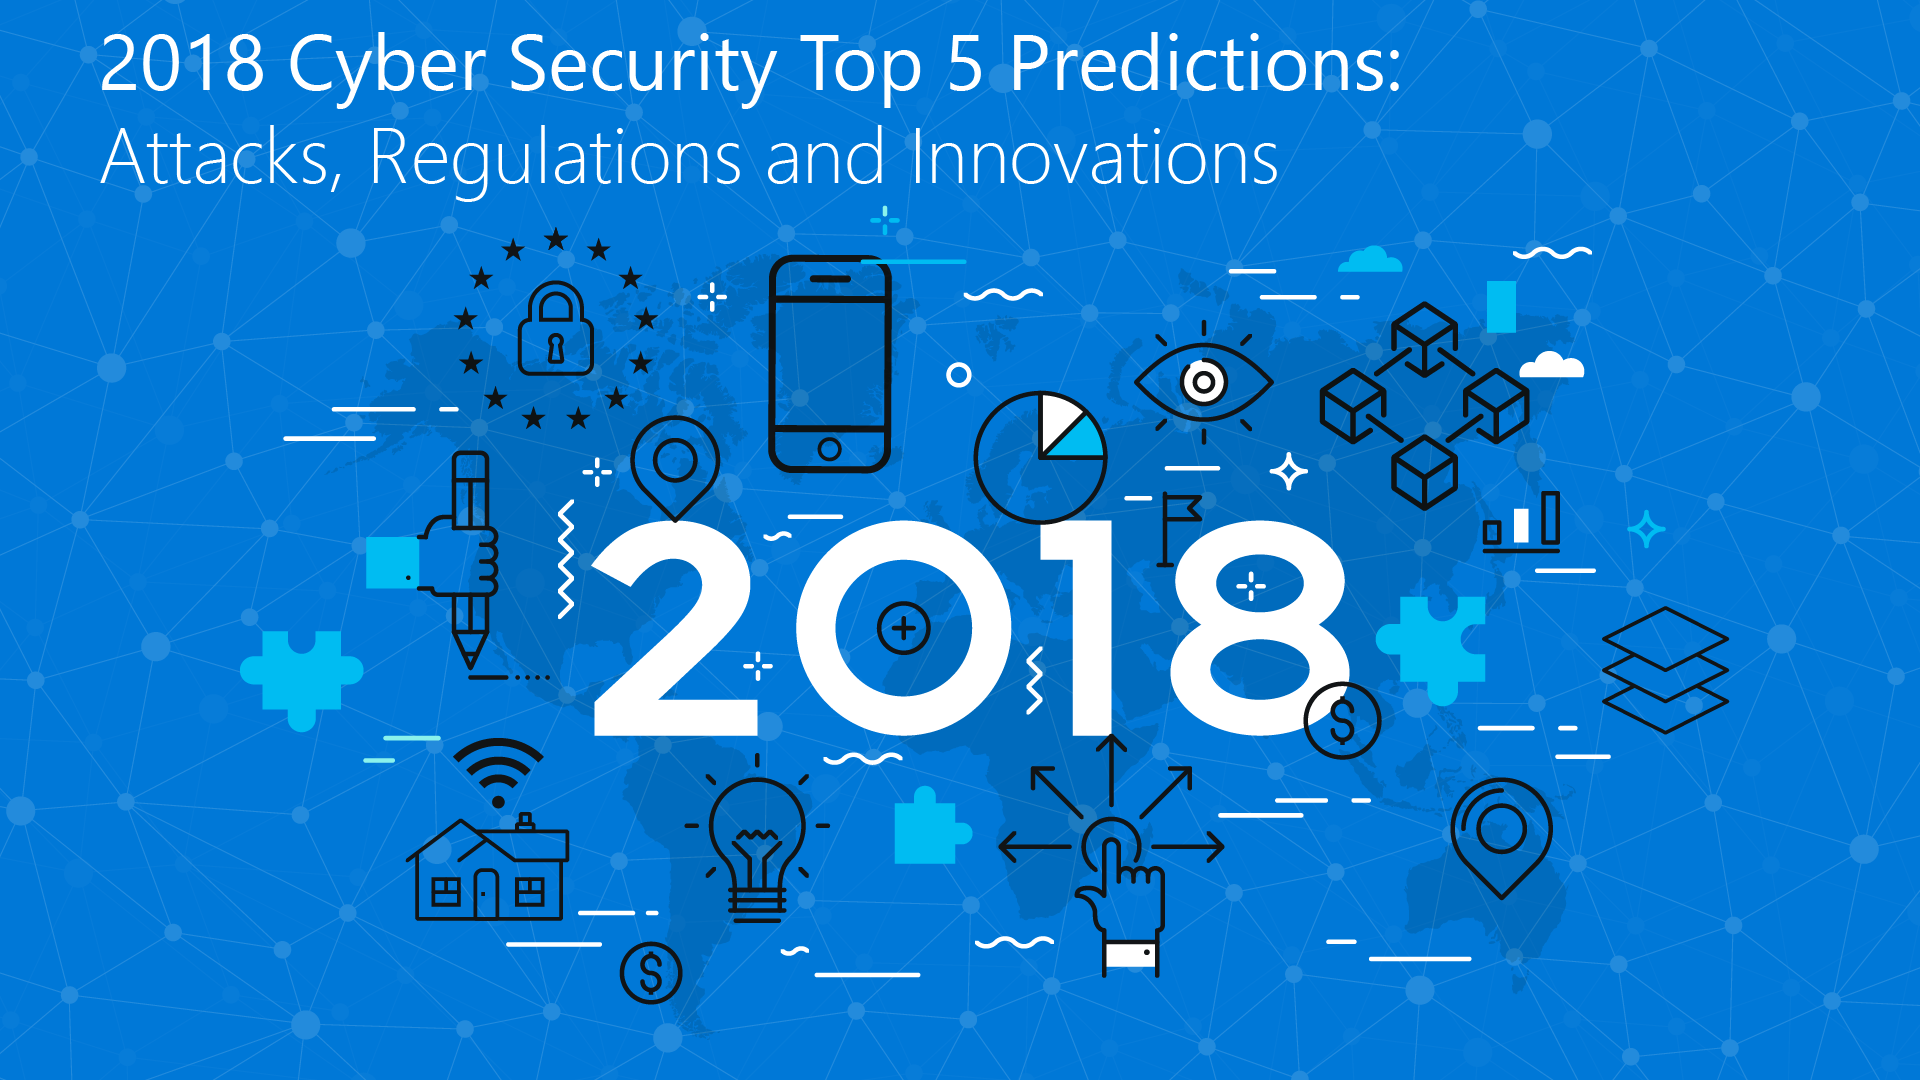 2018 Cyber Security Top 5 Predictions: Attacks, Regulations and Innovations